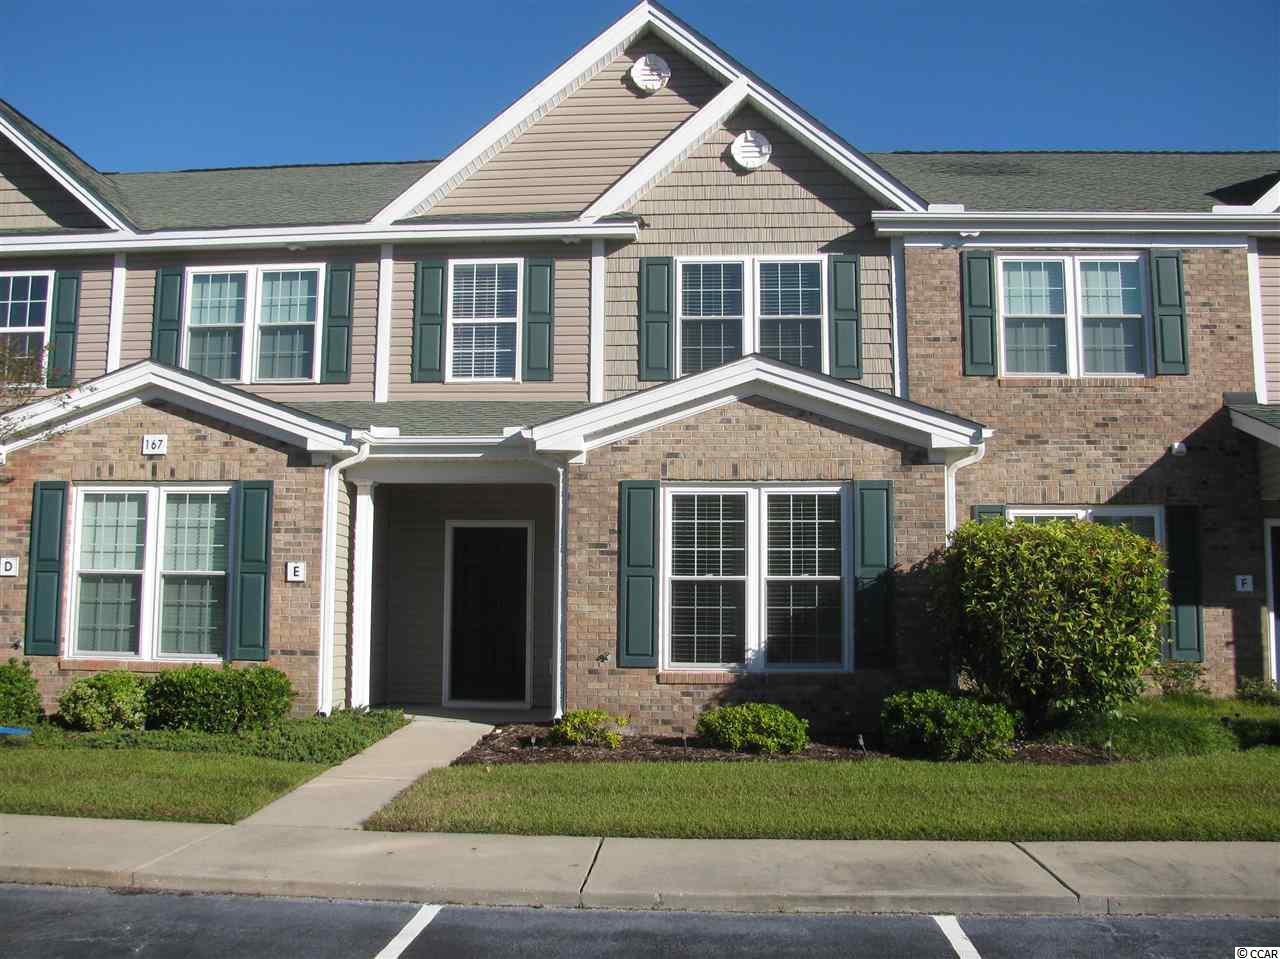 This 2 bedroom 2 1/2 bath townhouse is directly across from the pool and has just been updated to include new tinted high wind resistant windows, new water heater, well-maintained HVAC system, ceiling fans in all rooms, ceramic tile foyer and kitchen floor, carpet and walls look great, new blinds and many other upgrades. The HOA fee includes all exterior building maintenance, water, trash pick up, pool services, basic cable TV and landscaping services.